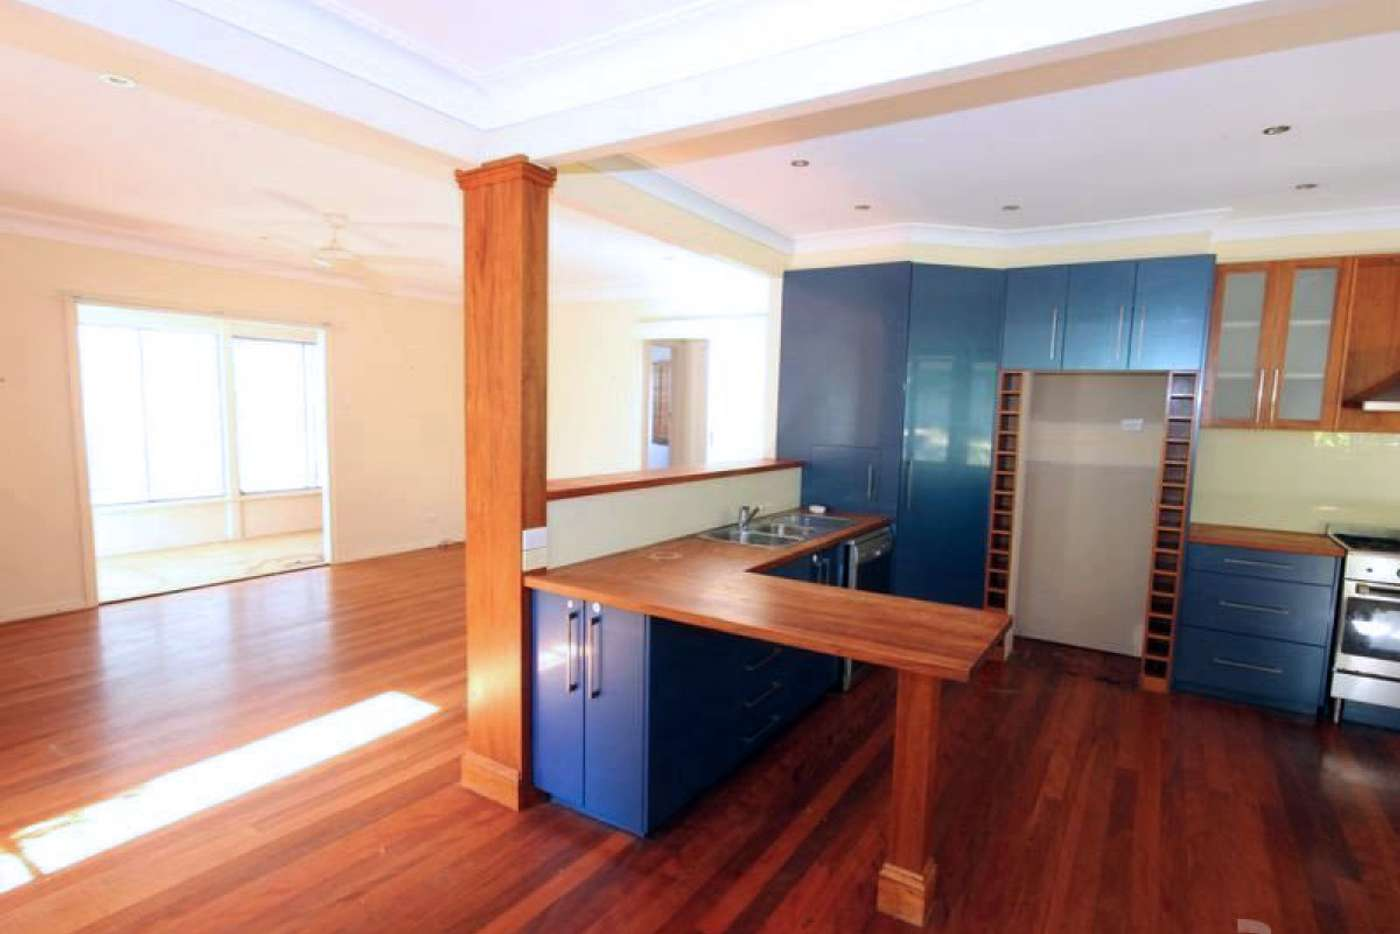 Sixth view of Homely house listing, 67 Tenby Street, Mount Gravatt QLD 4122